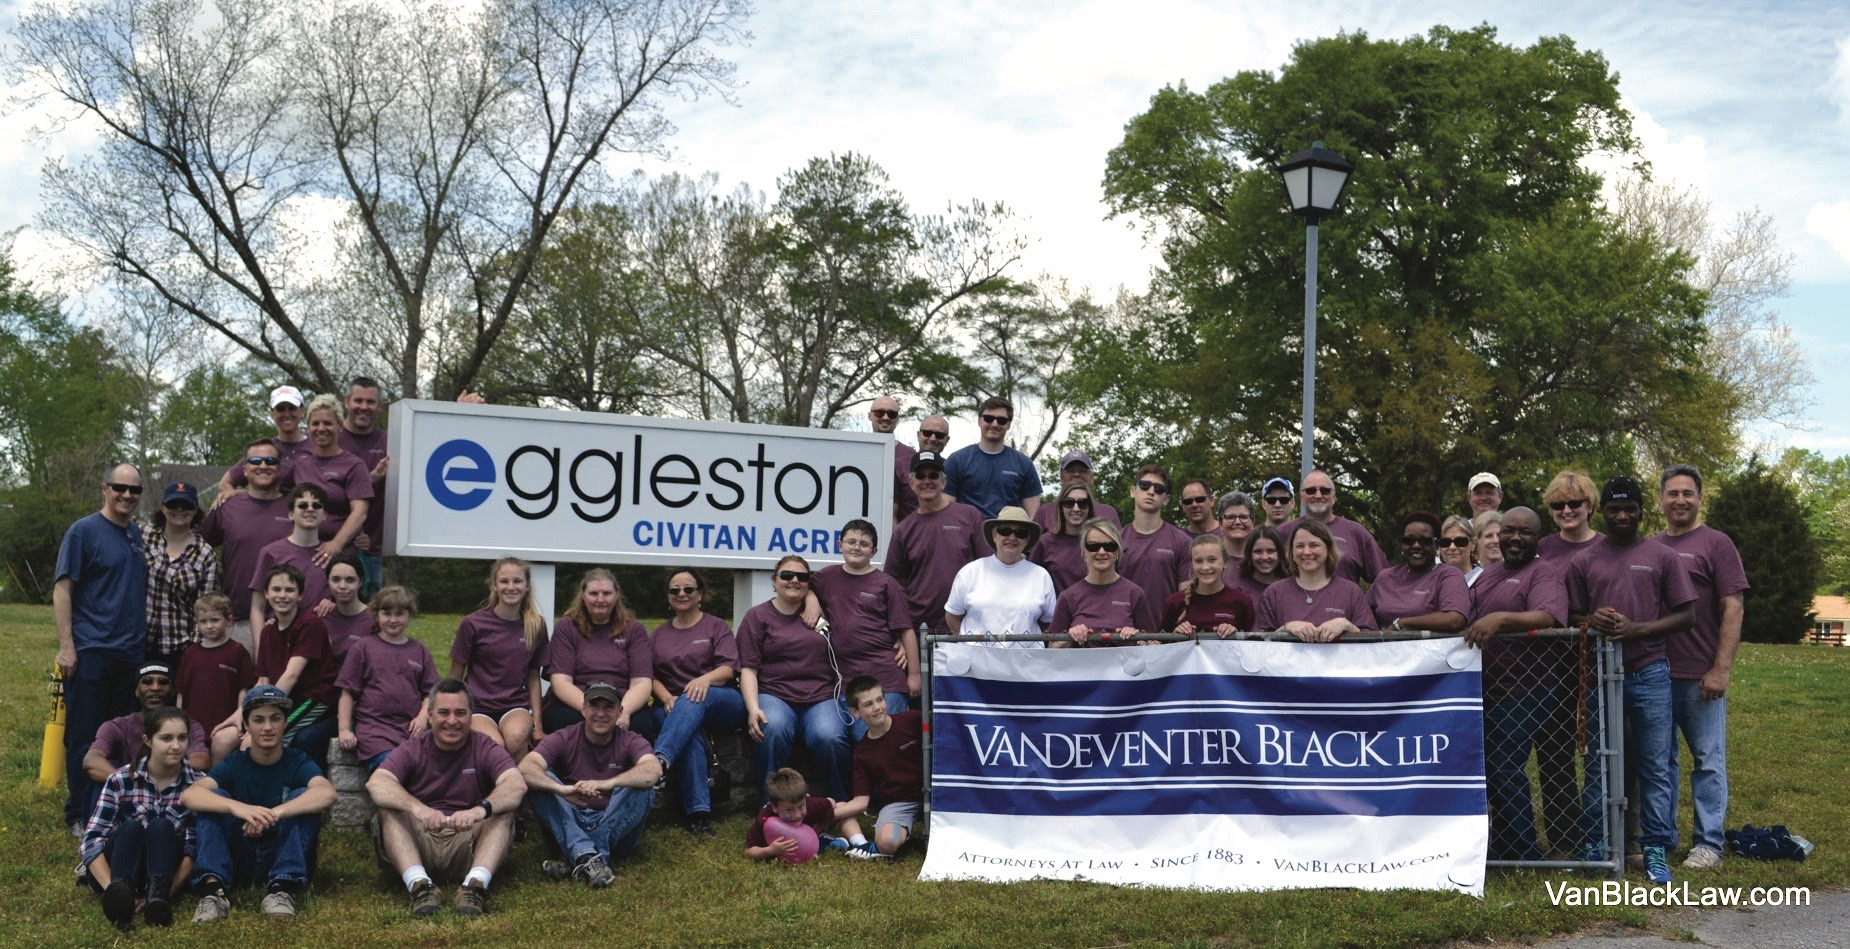 Vandeventer Black, Eggleston Camp, law firm, Hampton Roads, Community Impact Awards